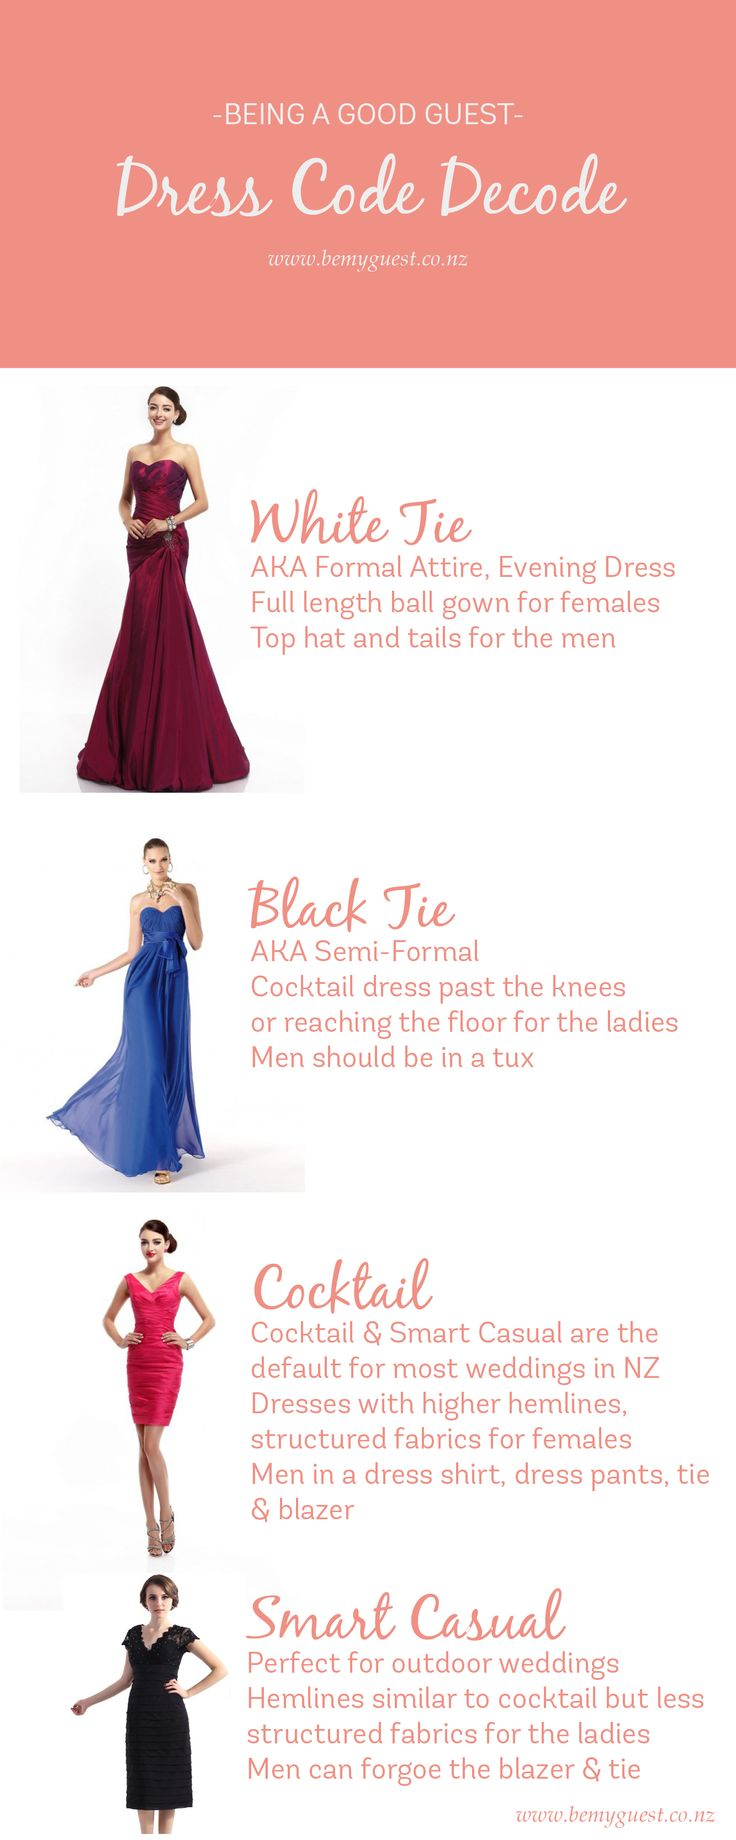 Decoding the Dress Code for Weddings - What to wear?!  This post helps you figure out what your outfit should be for a wedding which doesn't list a dress code... and gives you the general rules for what to wear when a dress code is mentioned   http://www.bemyguest.co.nz/decoding-the-dress-code-for-weddings-what-to-wear/